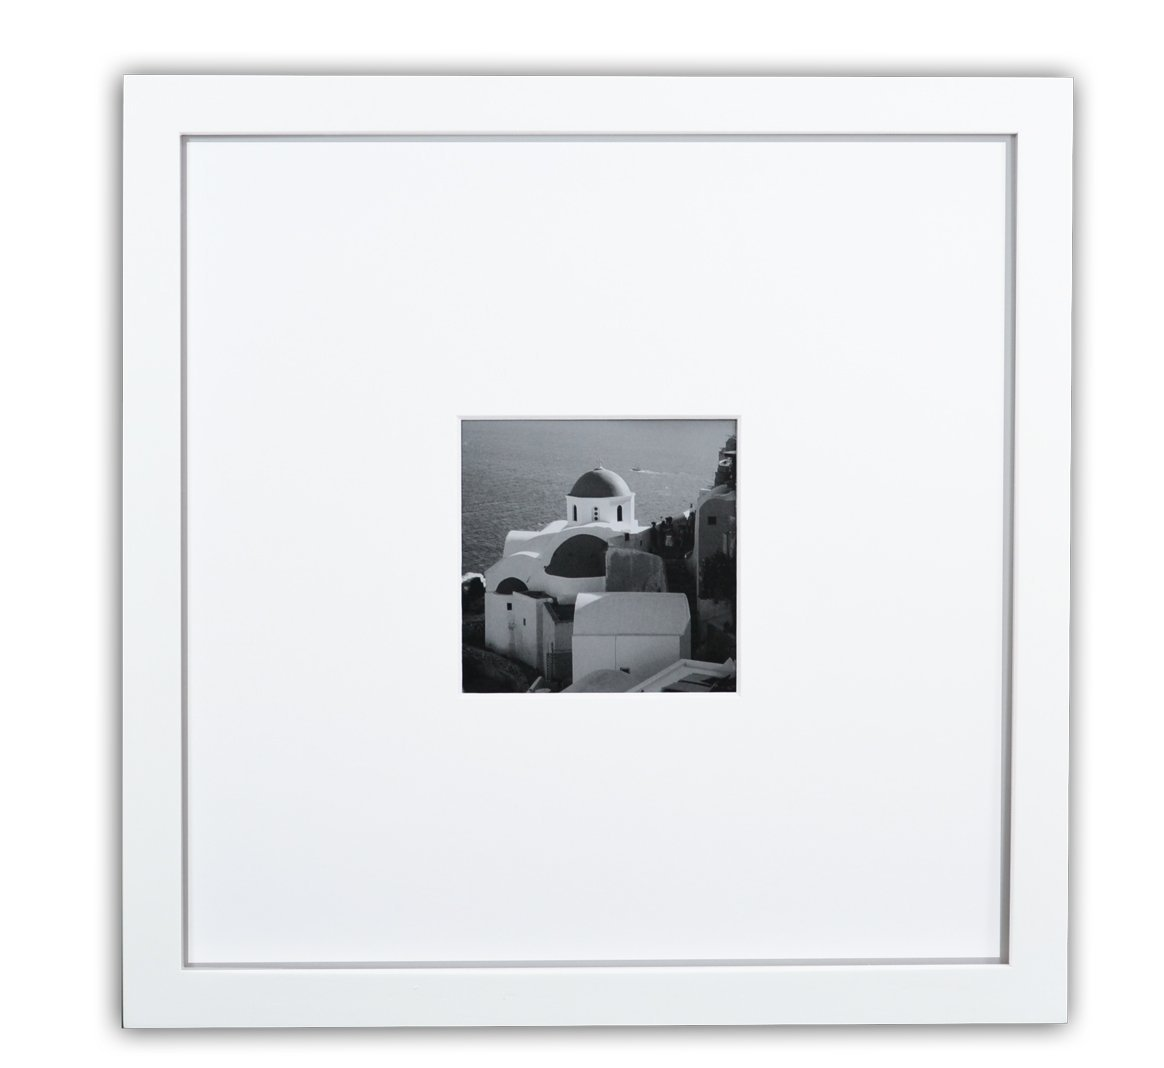 Cheap 11x11 Frame, find 11x11 Frame deals on line at Alibaba.com